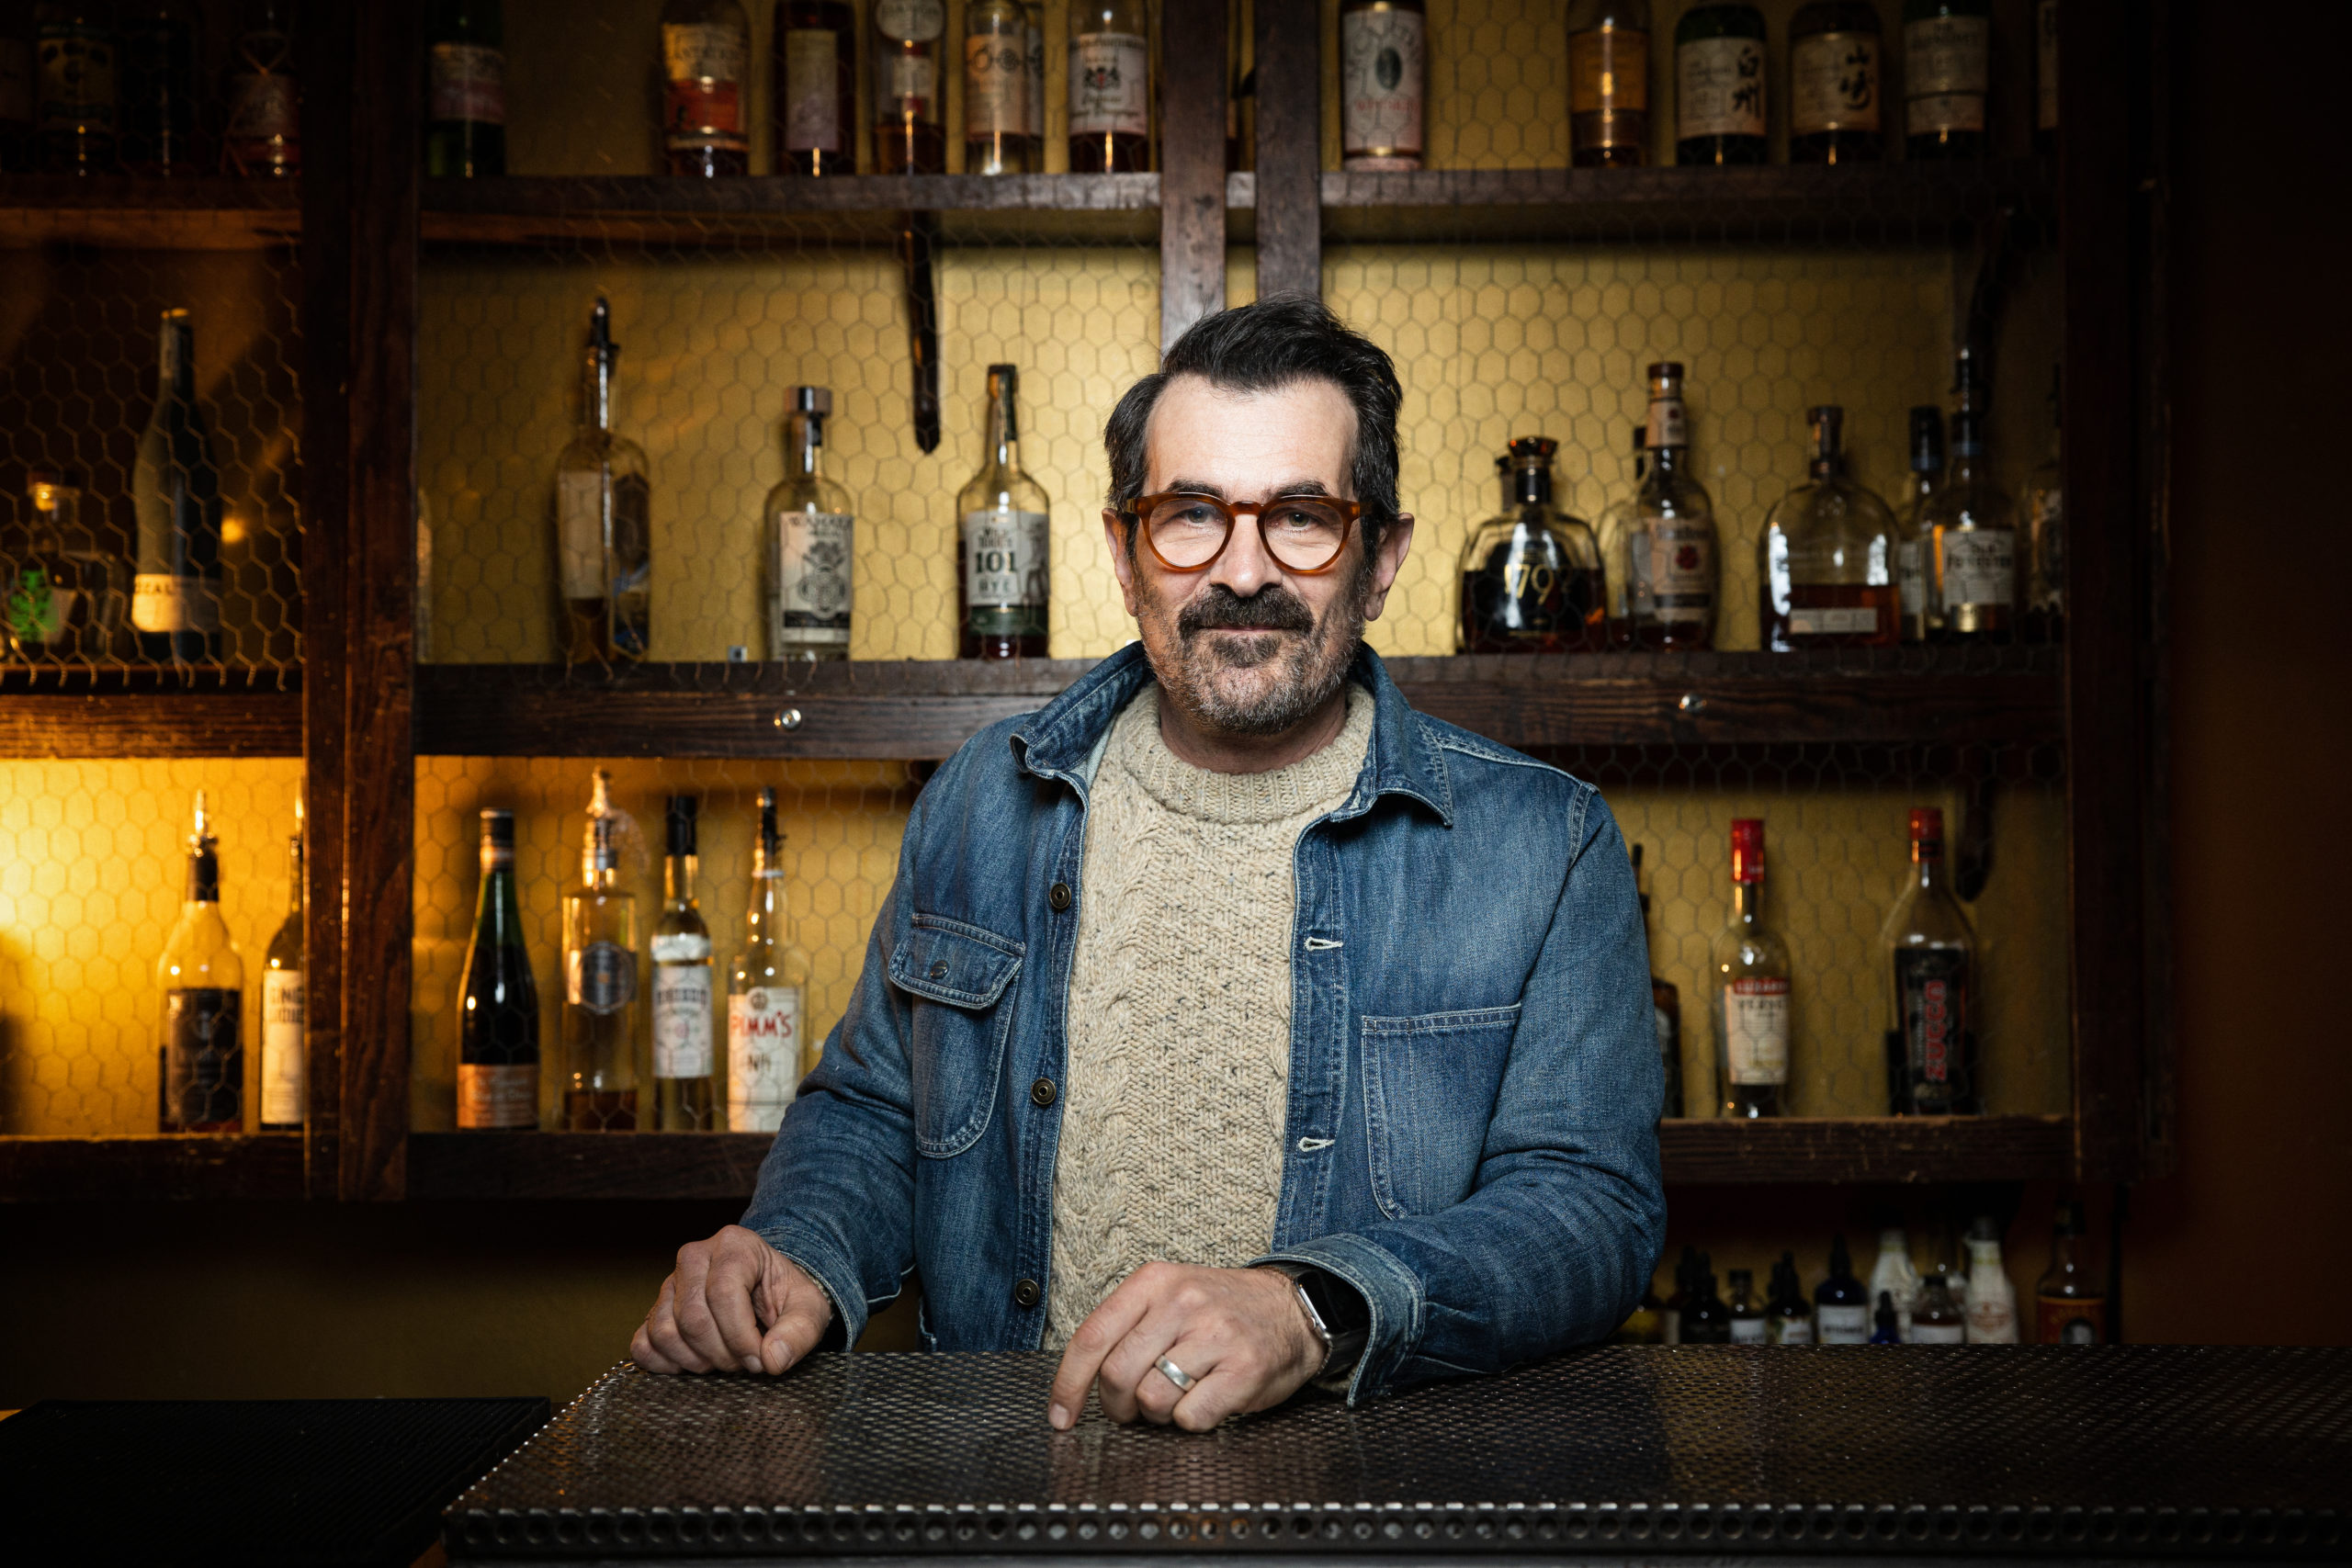 In our latest founders series, Ty Burrell shares his journey from actor to serial bar owner and restauranteur.